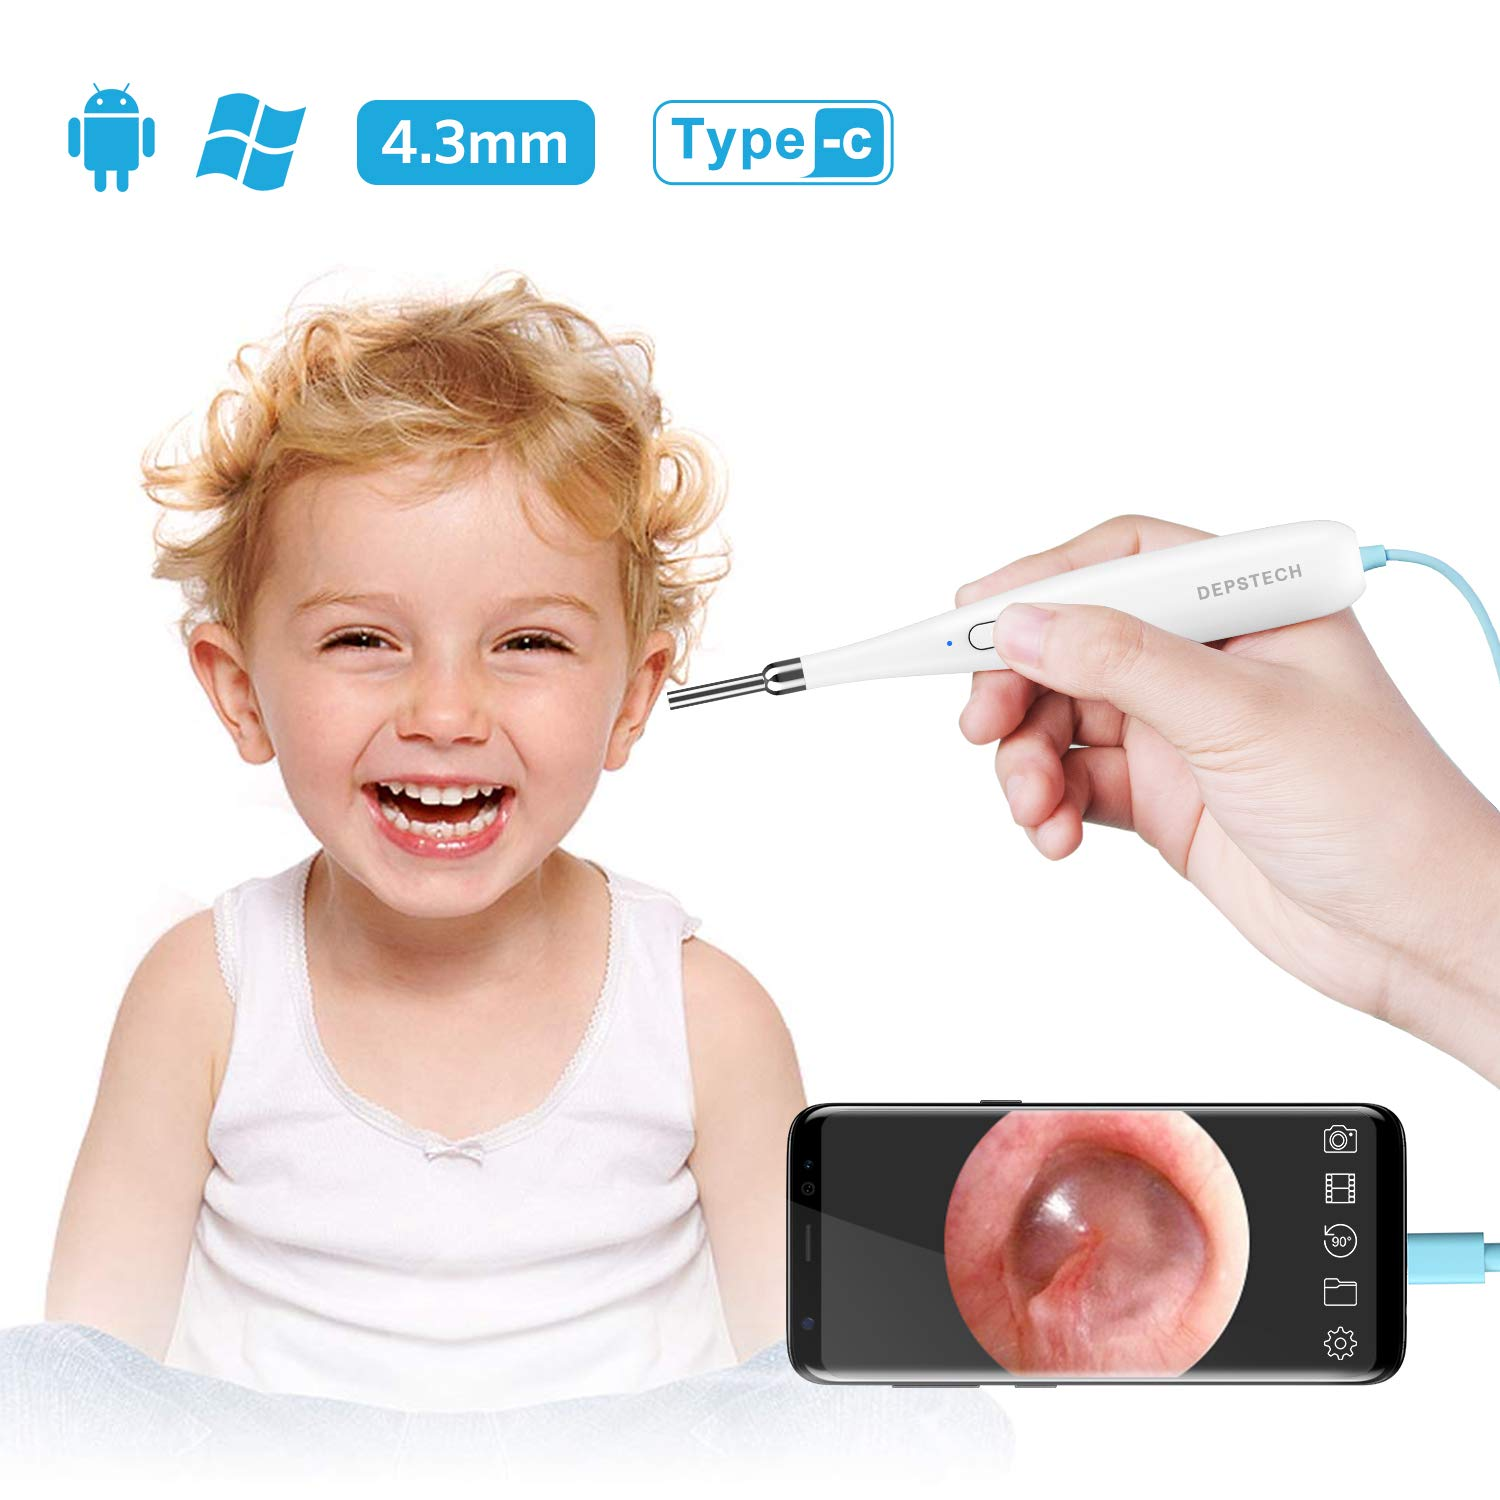 DEPSTECH 4.3mm USB Otoscope, Ultra-Thin HD Ear Scope Camera with 6 Adjustable LED Lights, Digital Audiology Inspection Endoscope for OTG Android Devices, Windows & Mac PC